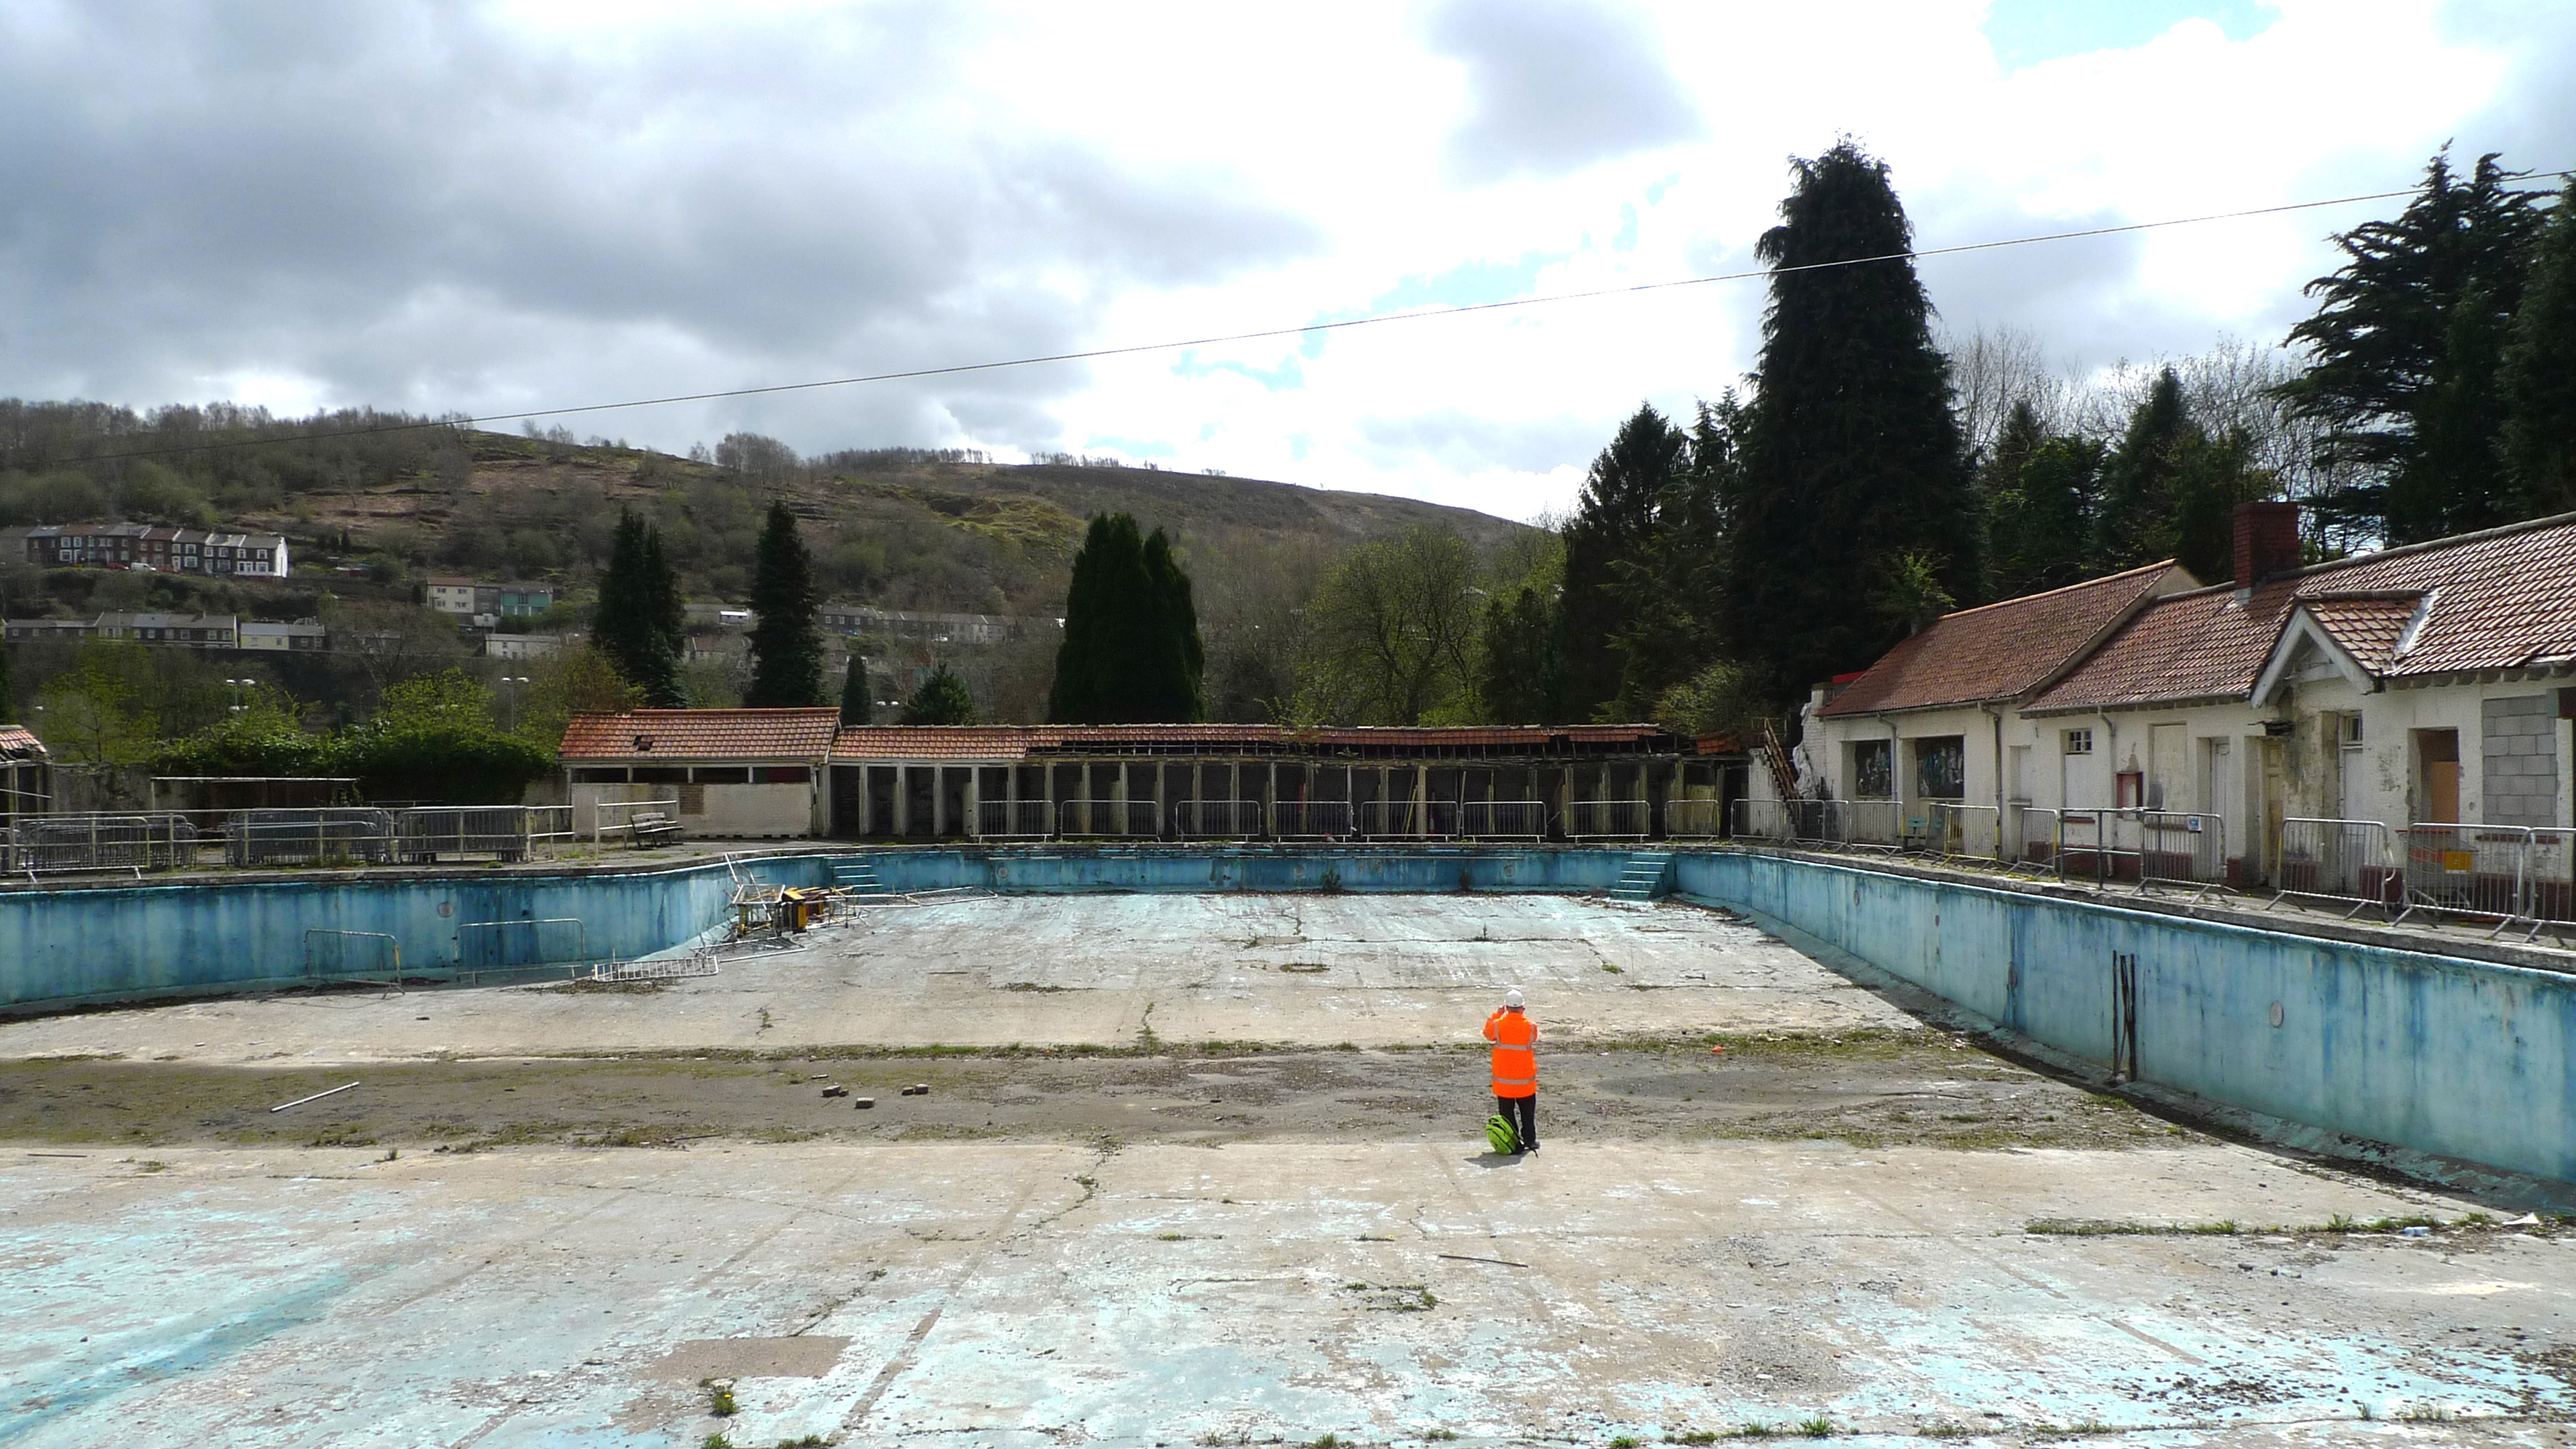 Lido Pool Before Restoration